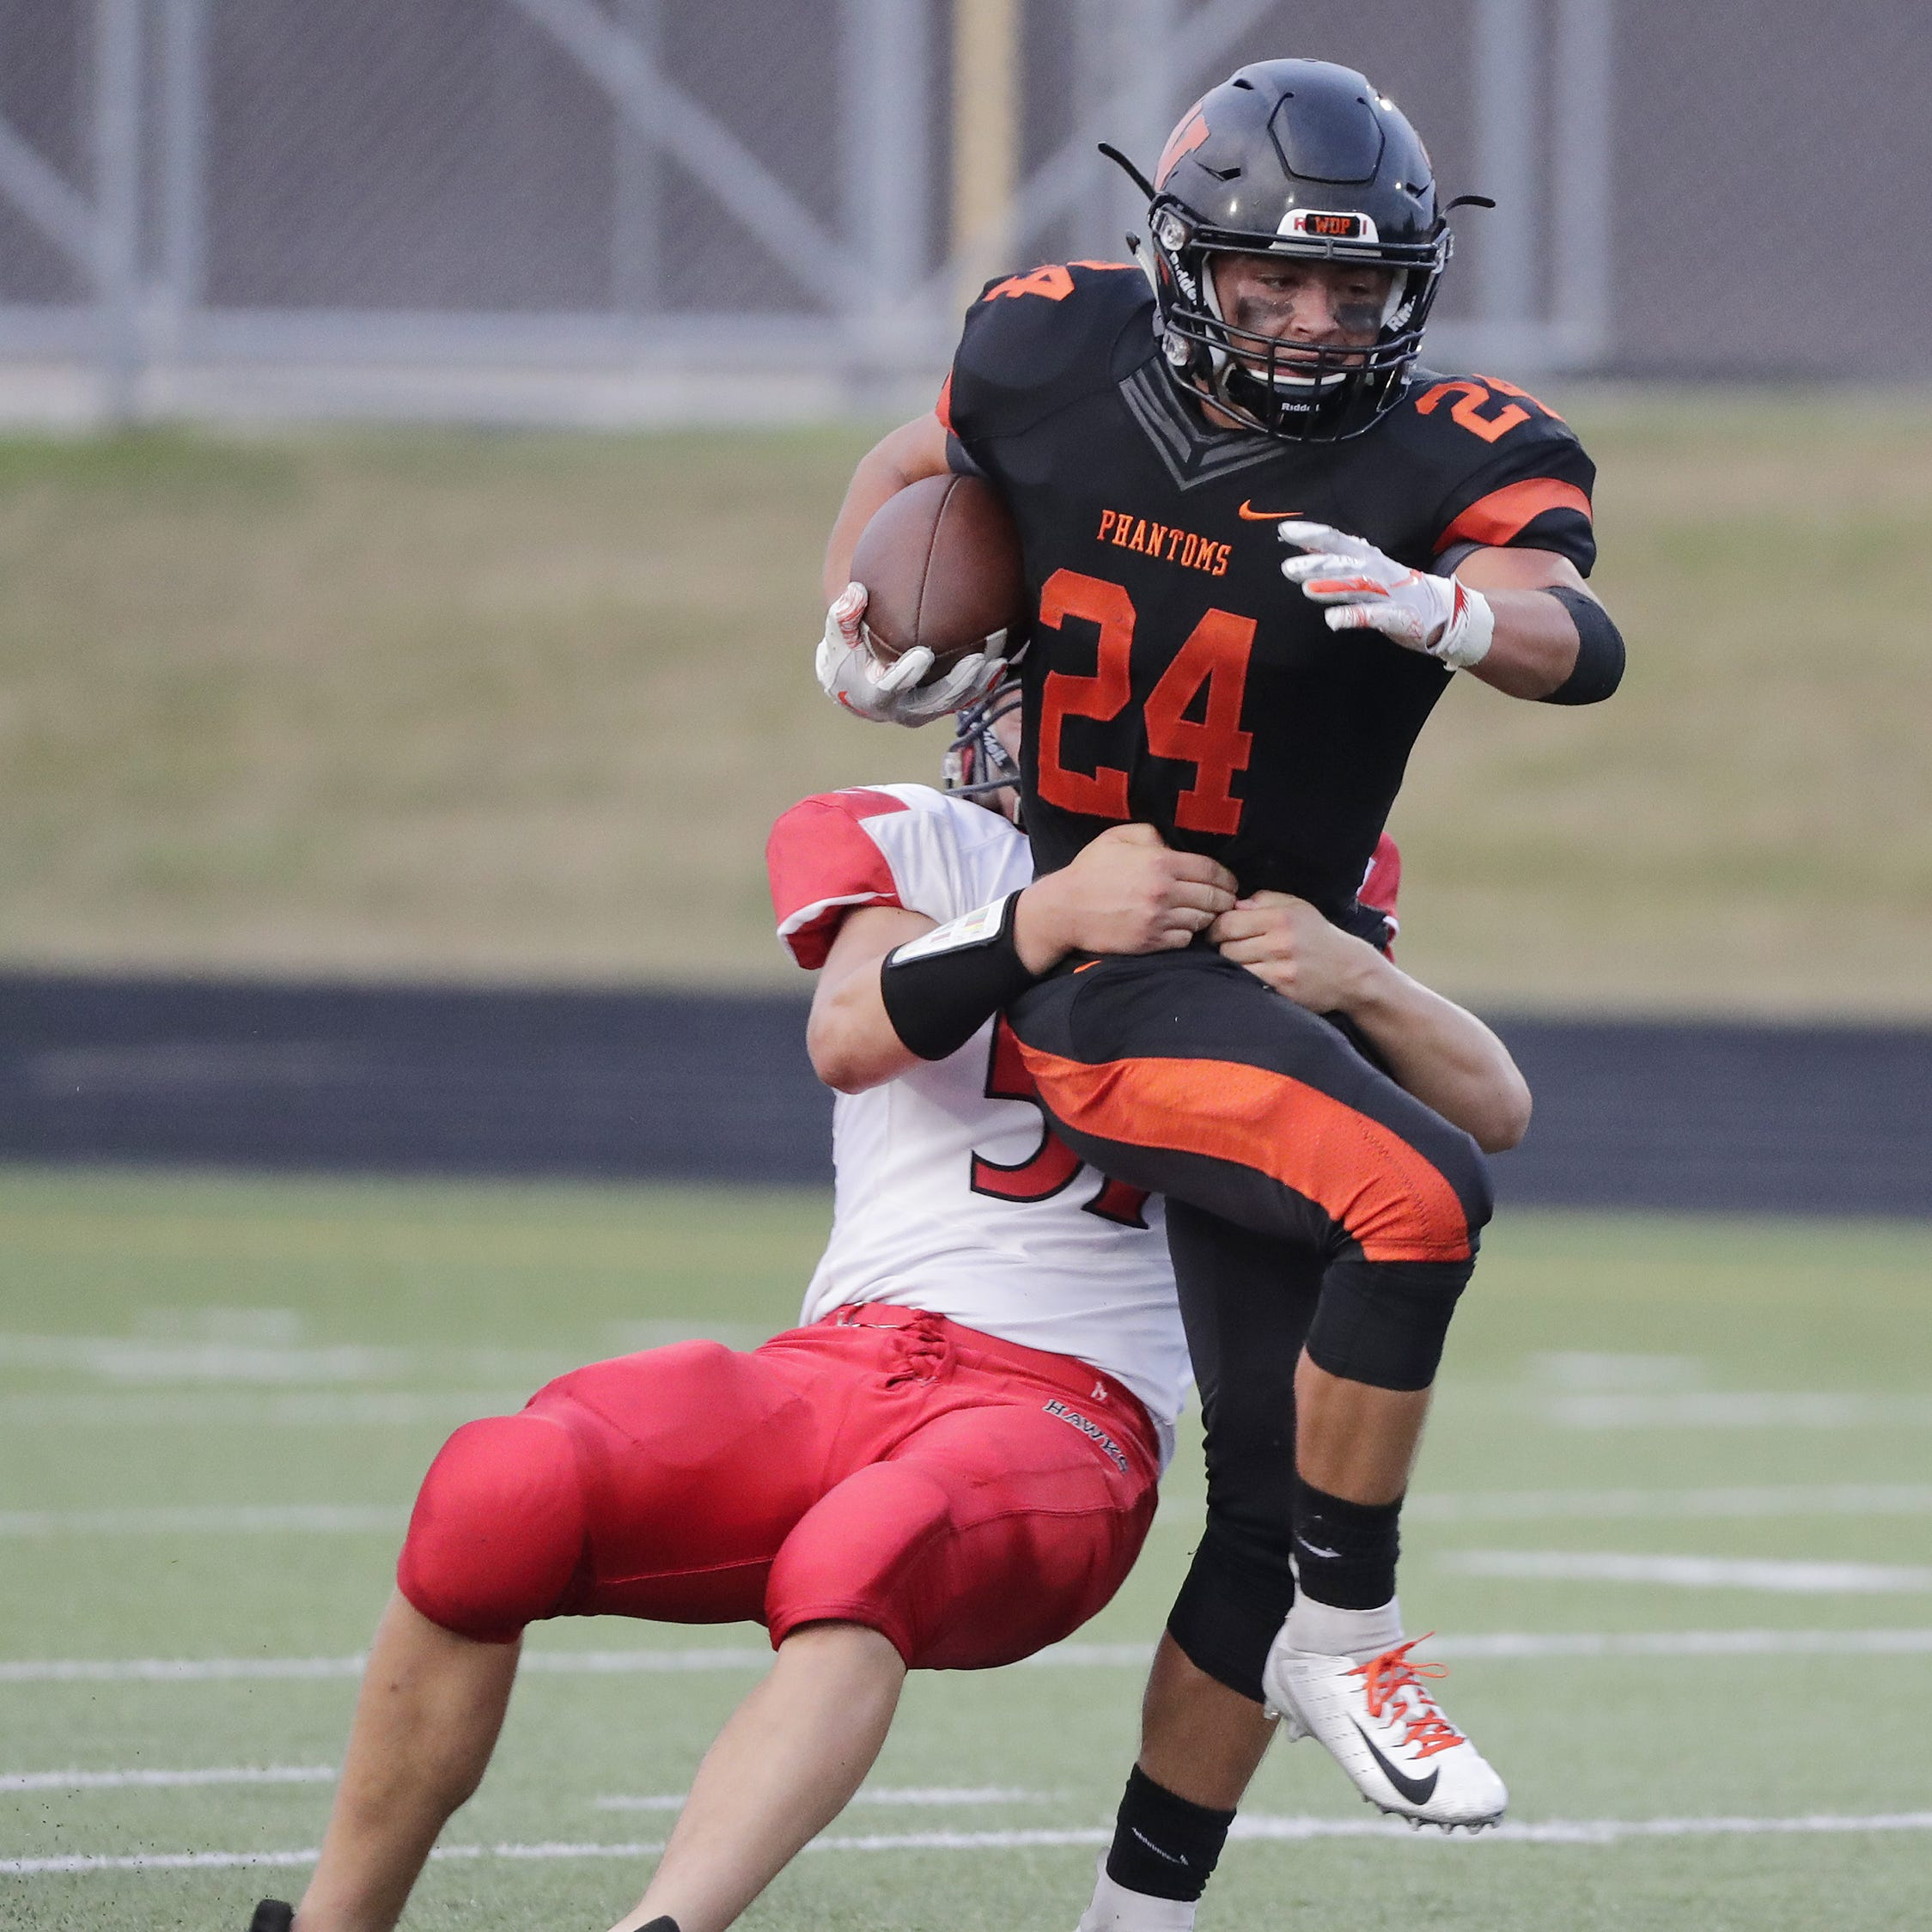 WIAA football: West De Pere looking for a Notre Dame rematch? Not yet